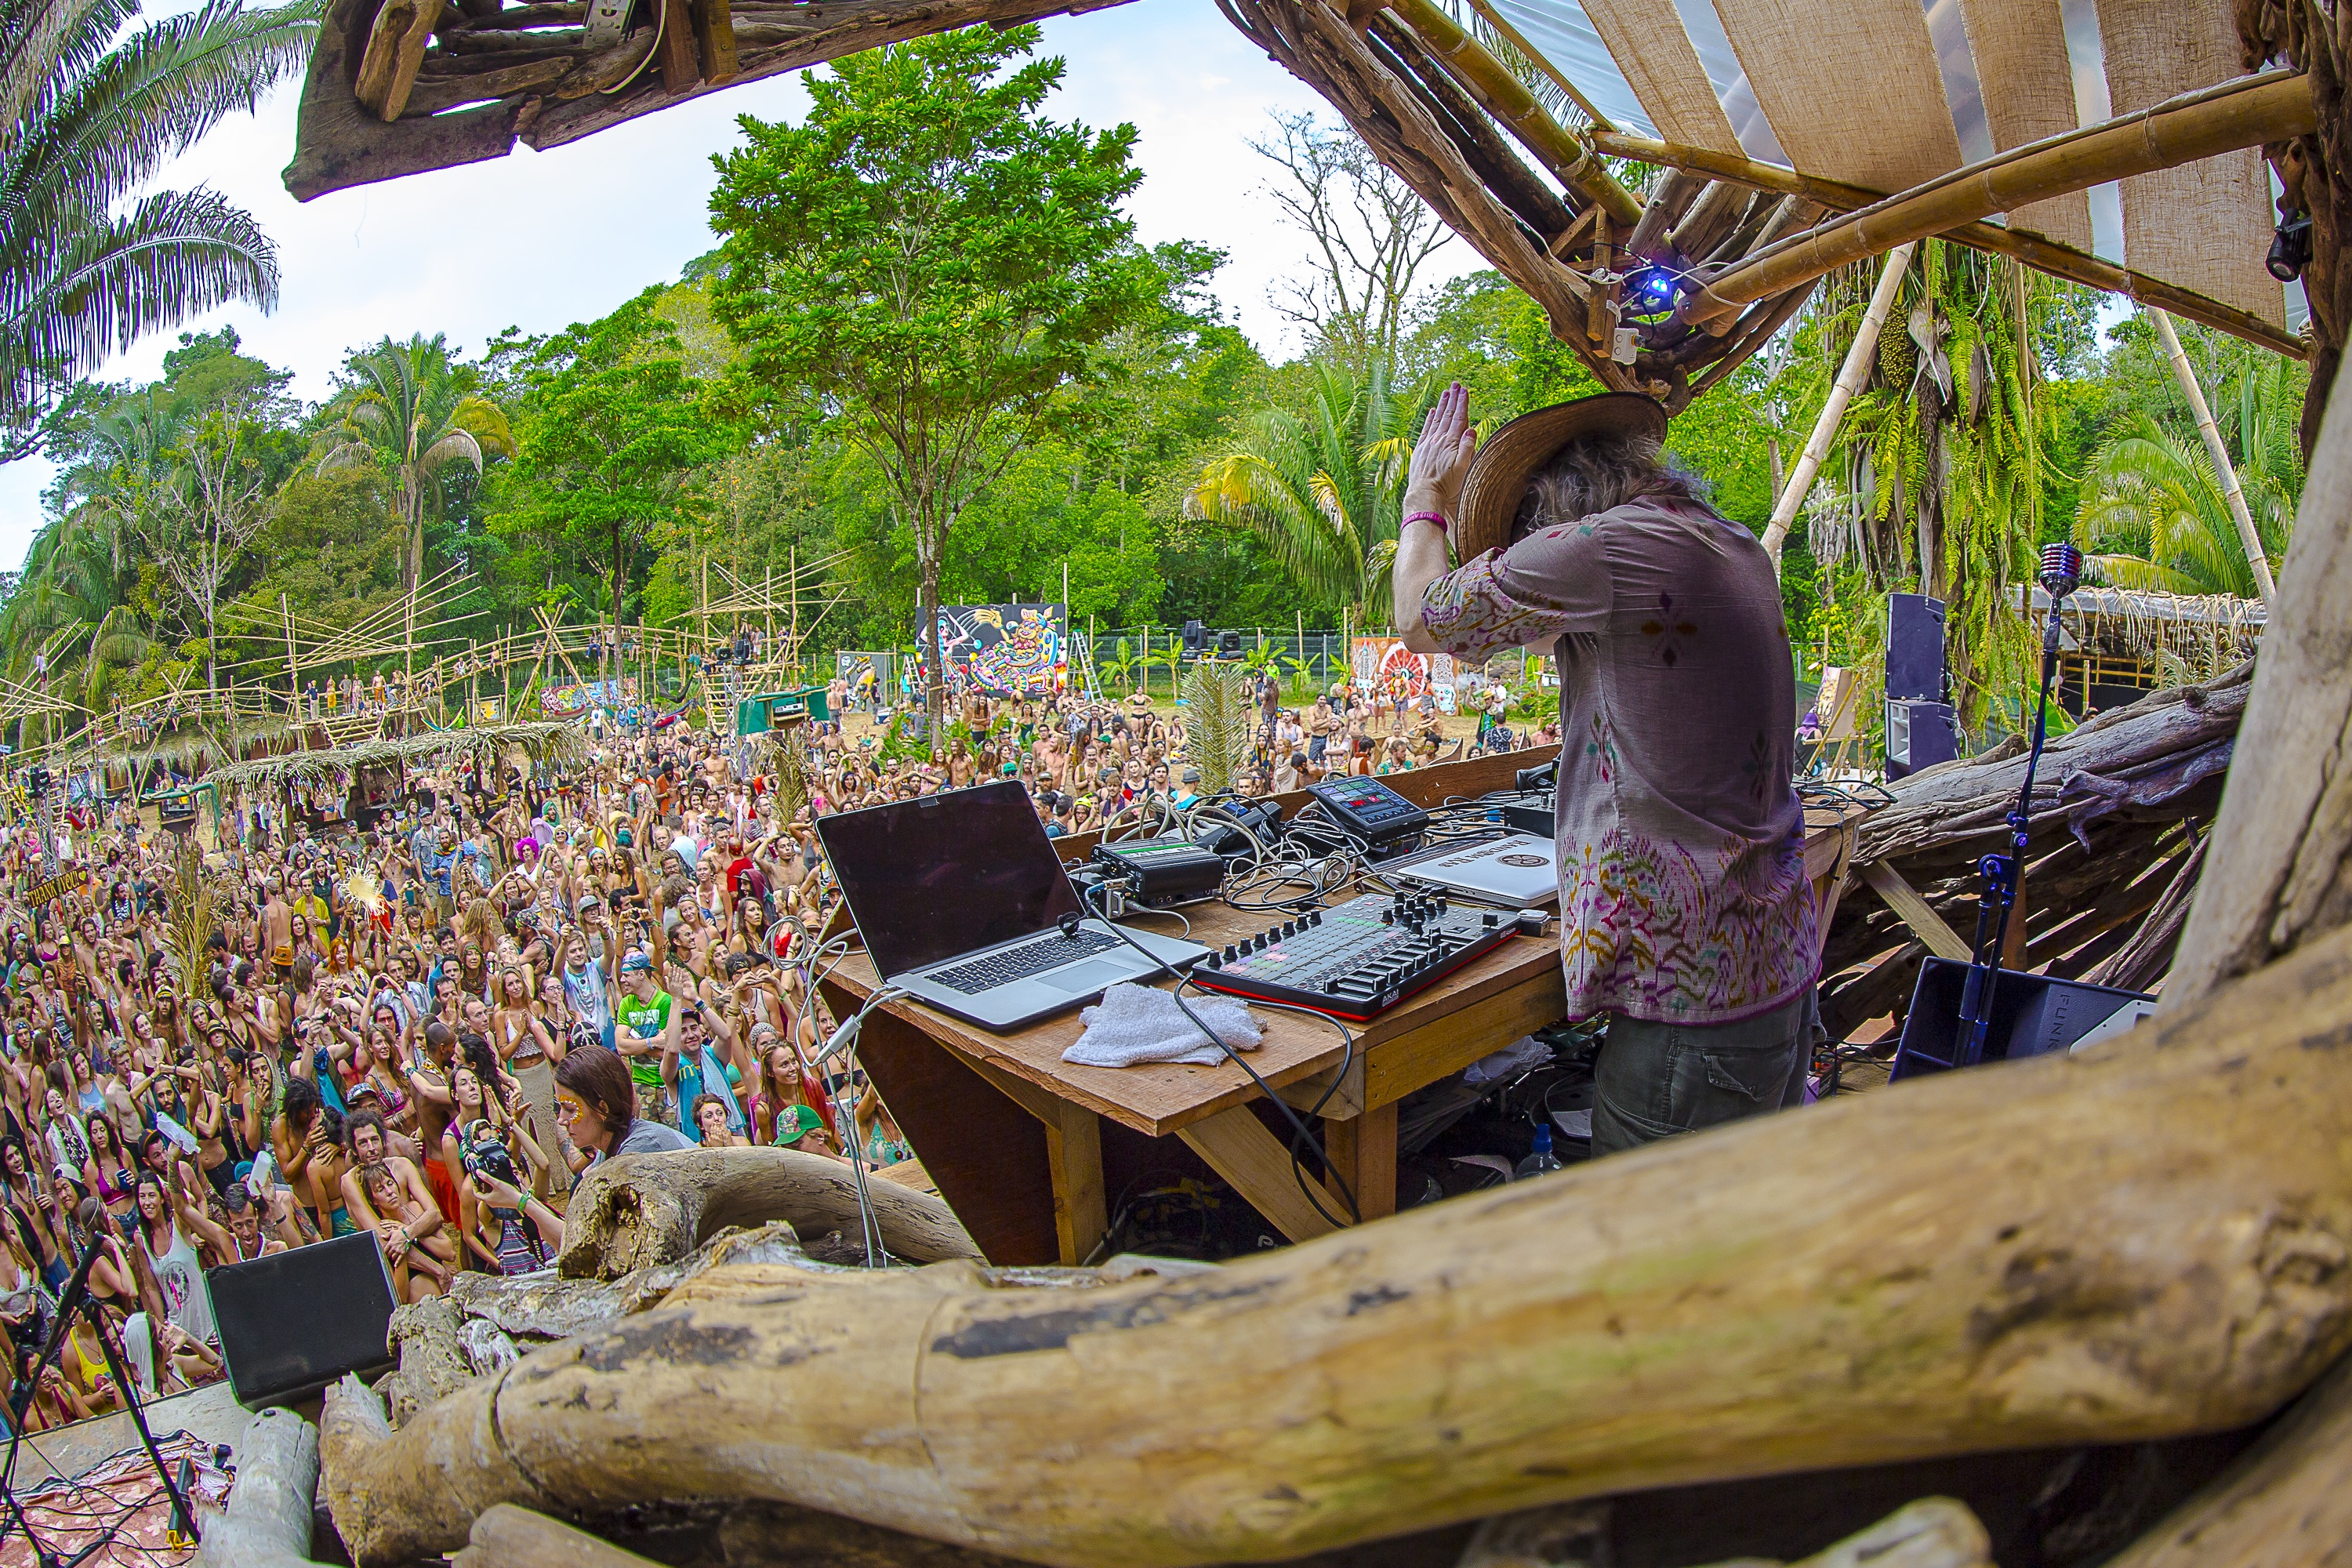 Official LostinSound Recap Video | Envision Festival 2015 in Costa Rica